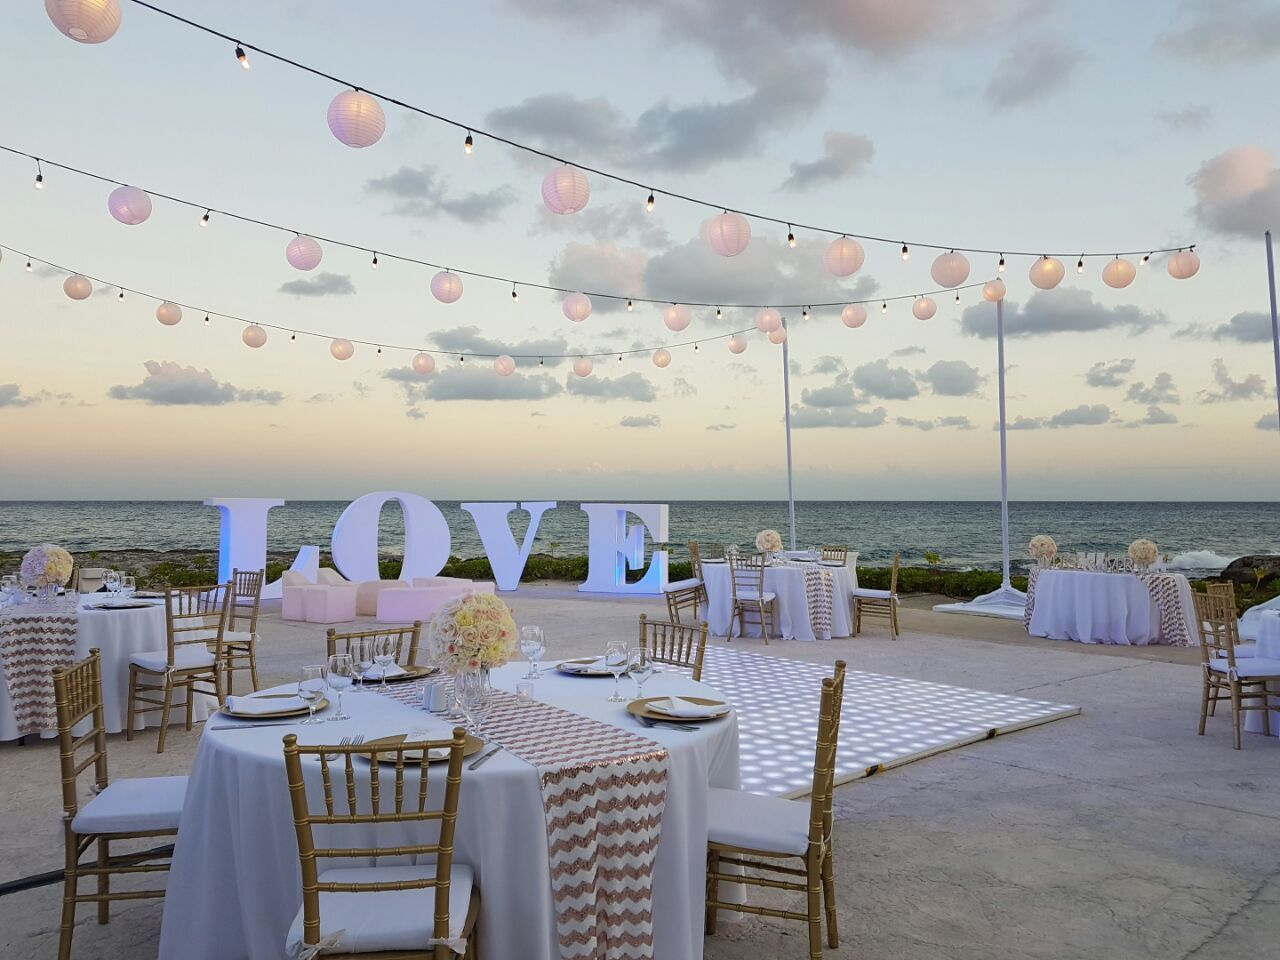 White and Gold accents and an Ocean View for this Wedding